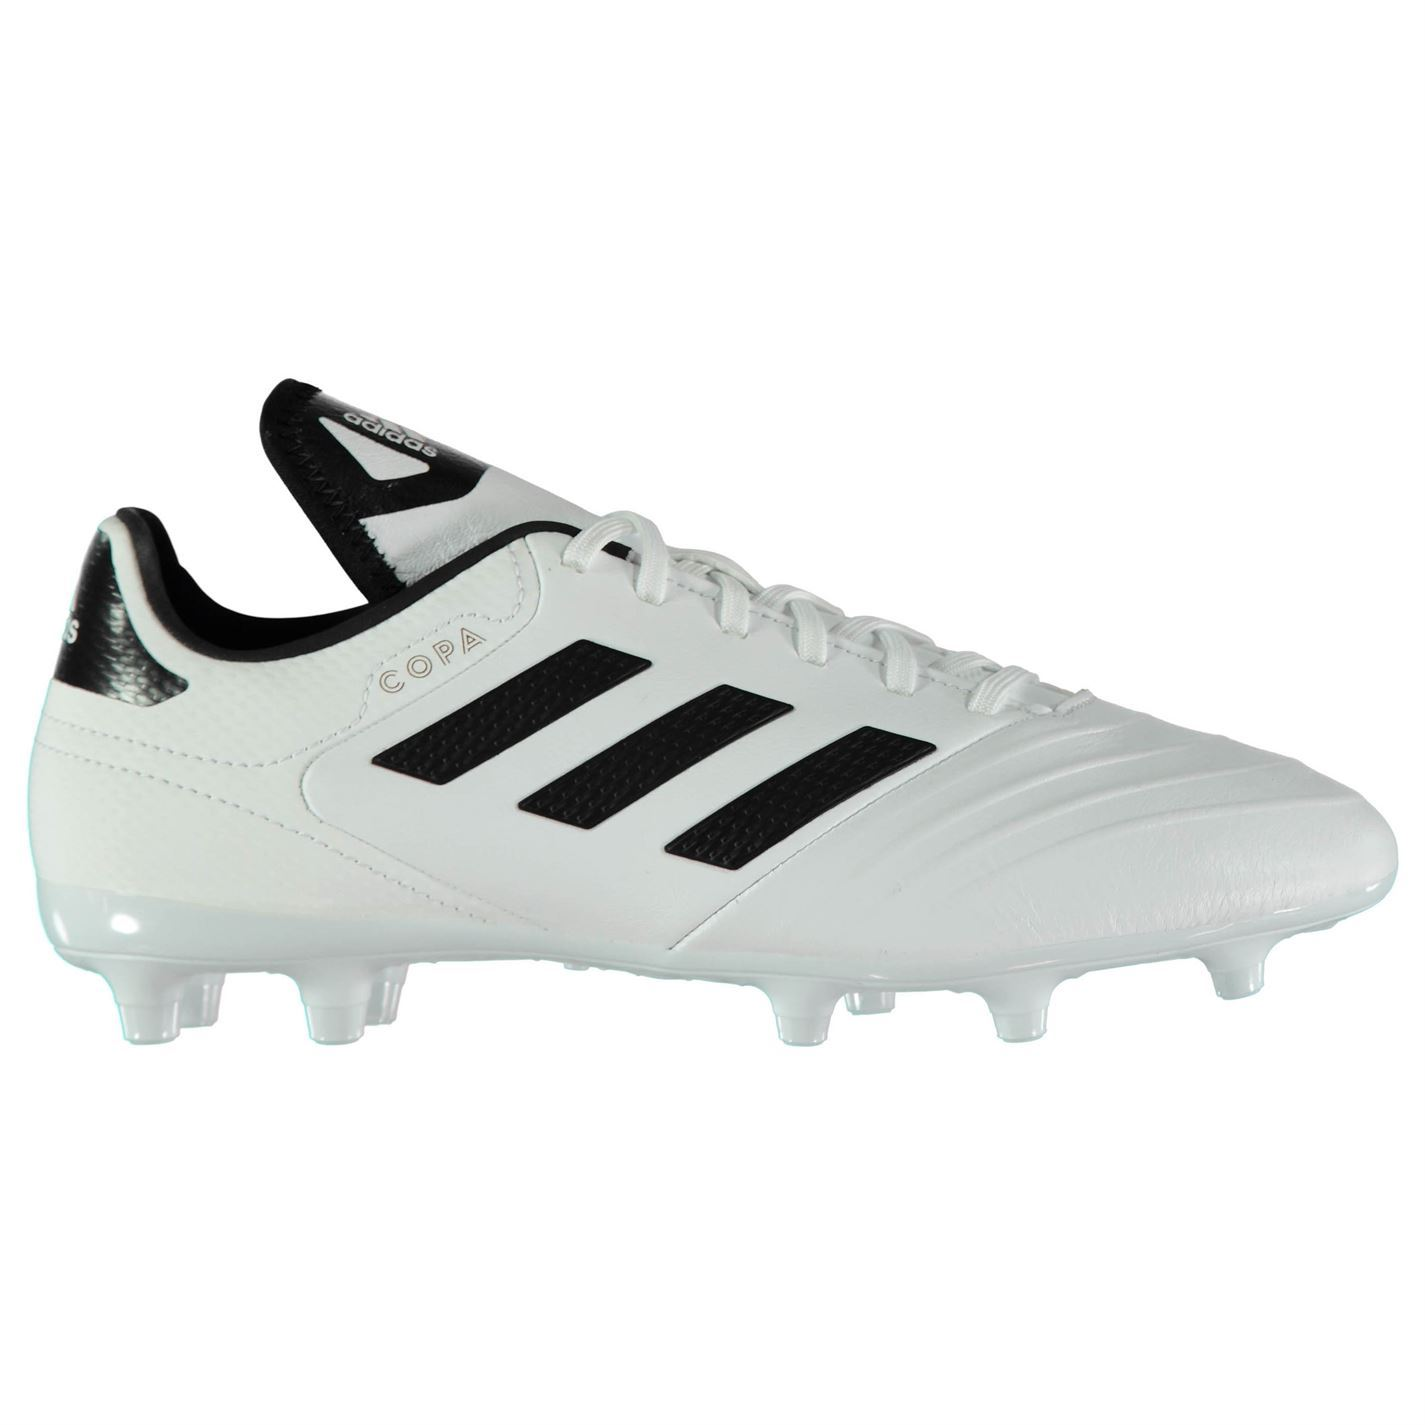 buy online 61bd6 939c8 ... adidas Copa 18.3 Firm Ground Football Boots Mens White Black Gold  Soccer Cleats ...